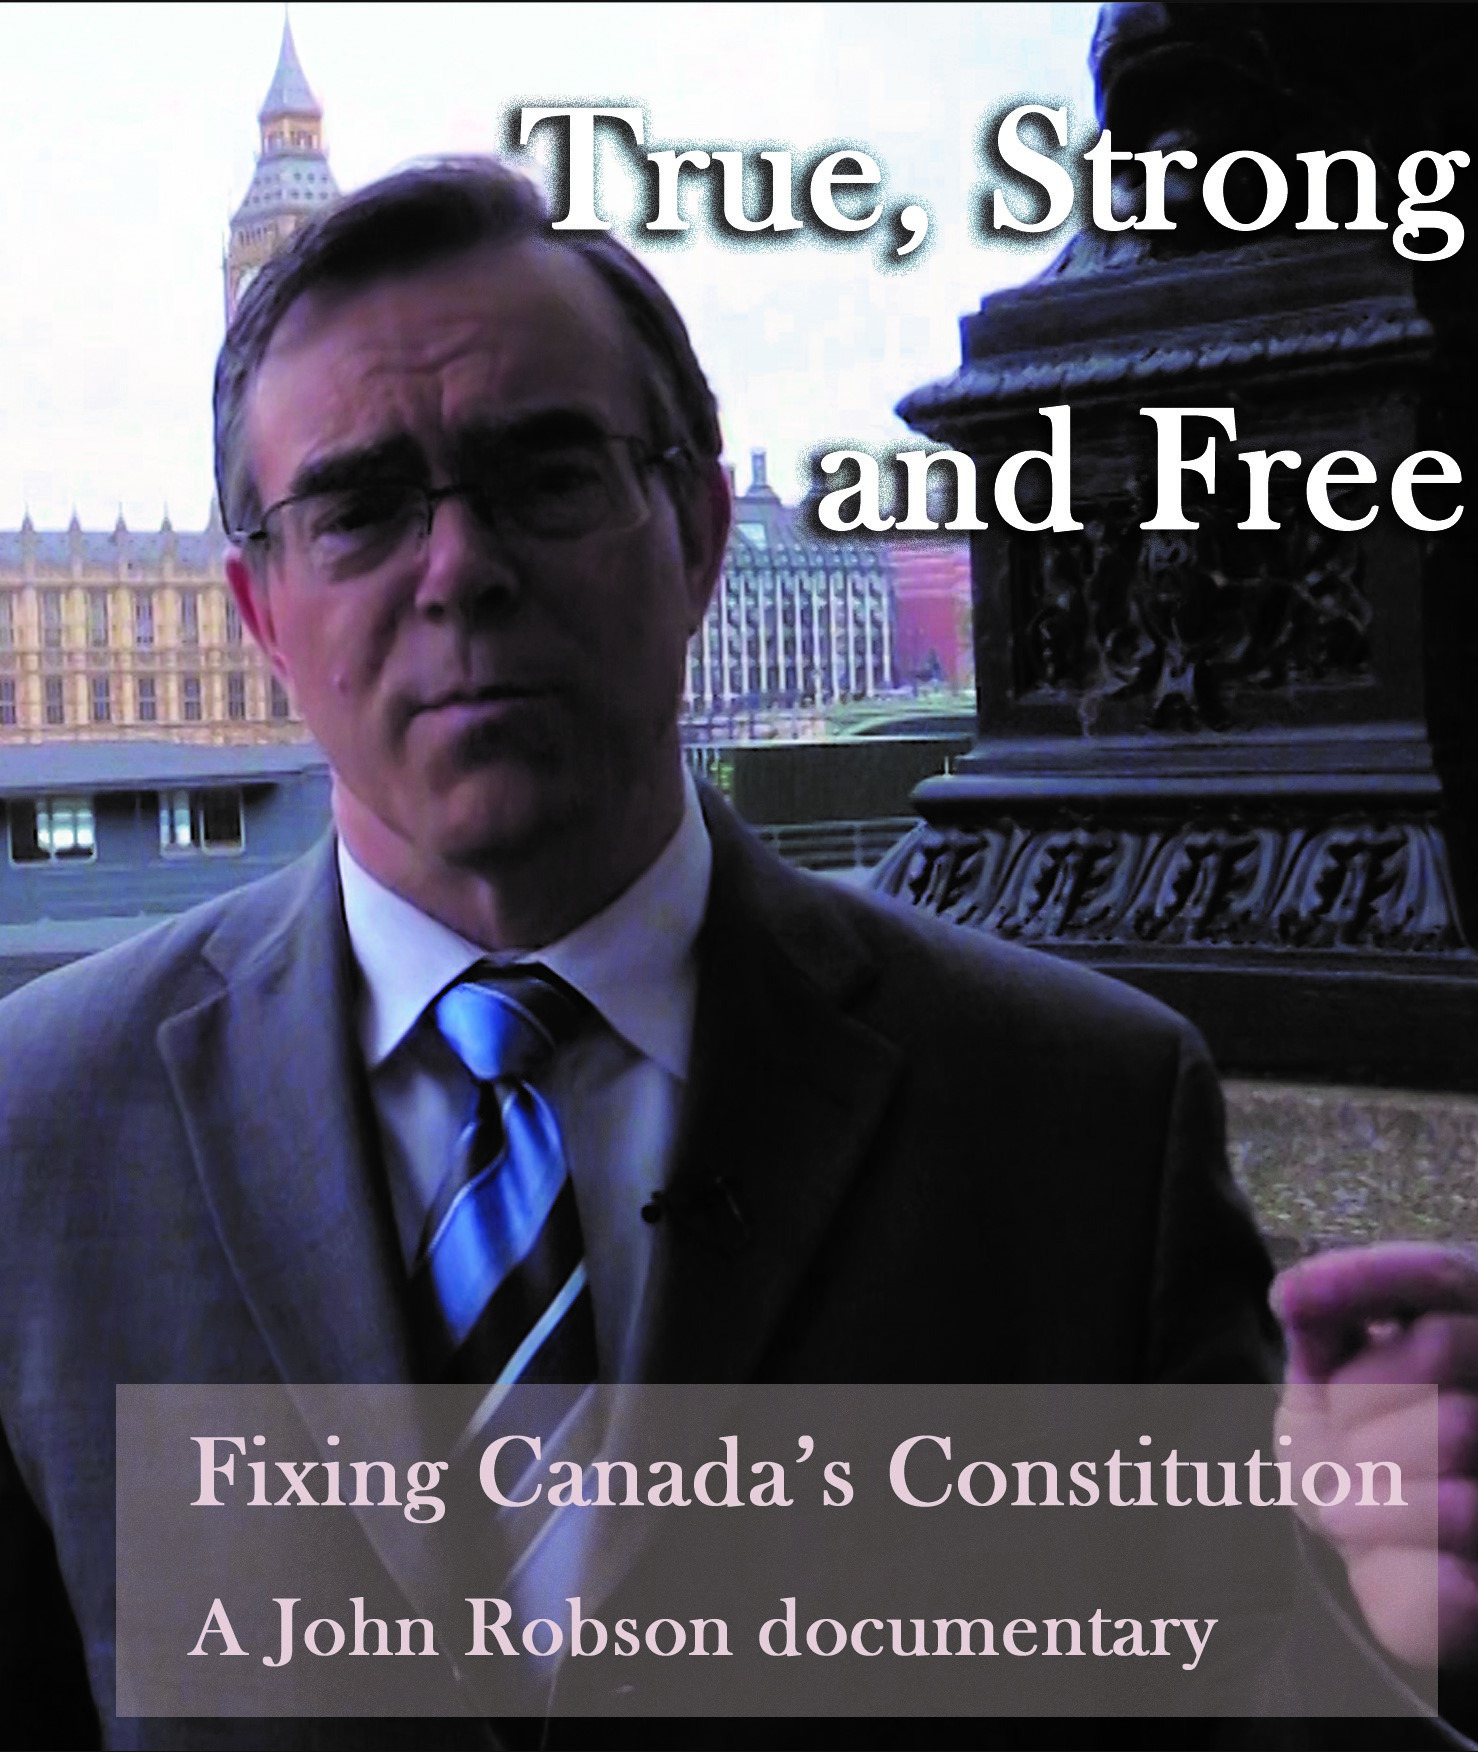 [BLU-RAY DVD] True, Strong and Free: A John Robson documentary - Copy